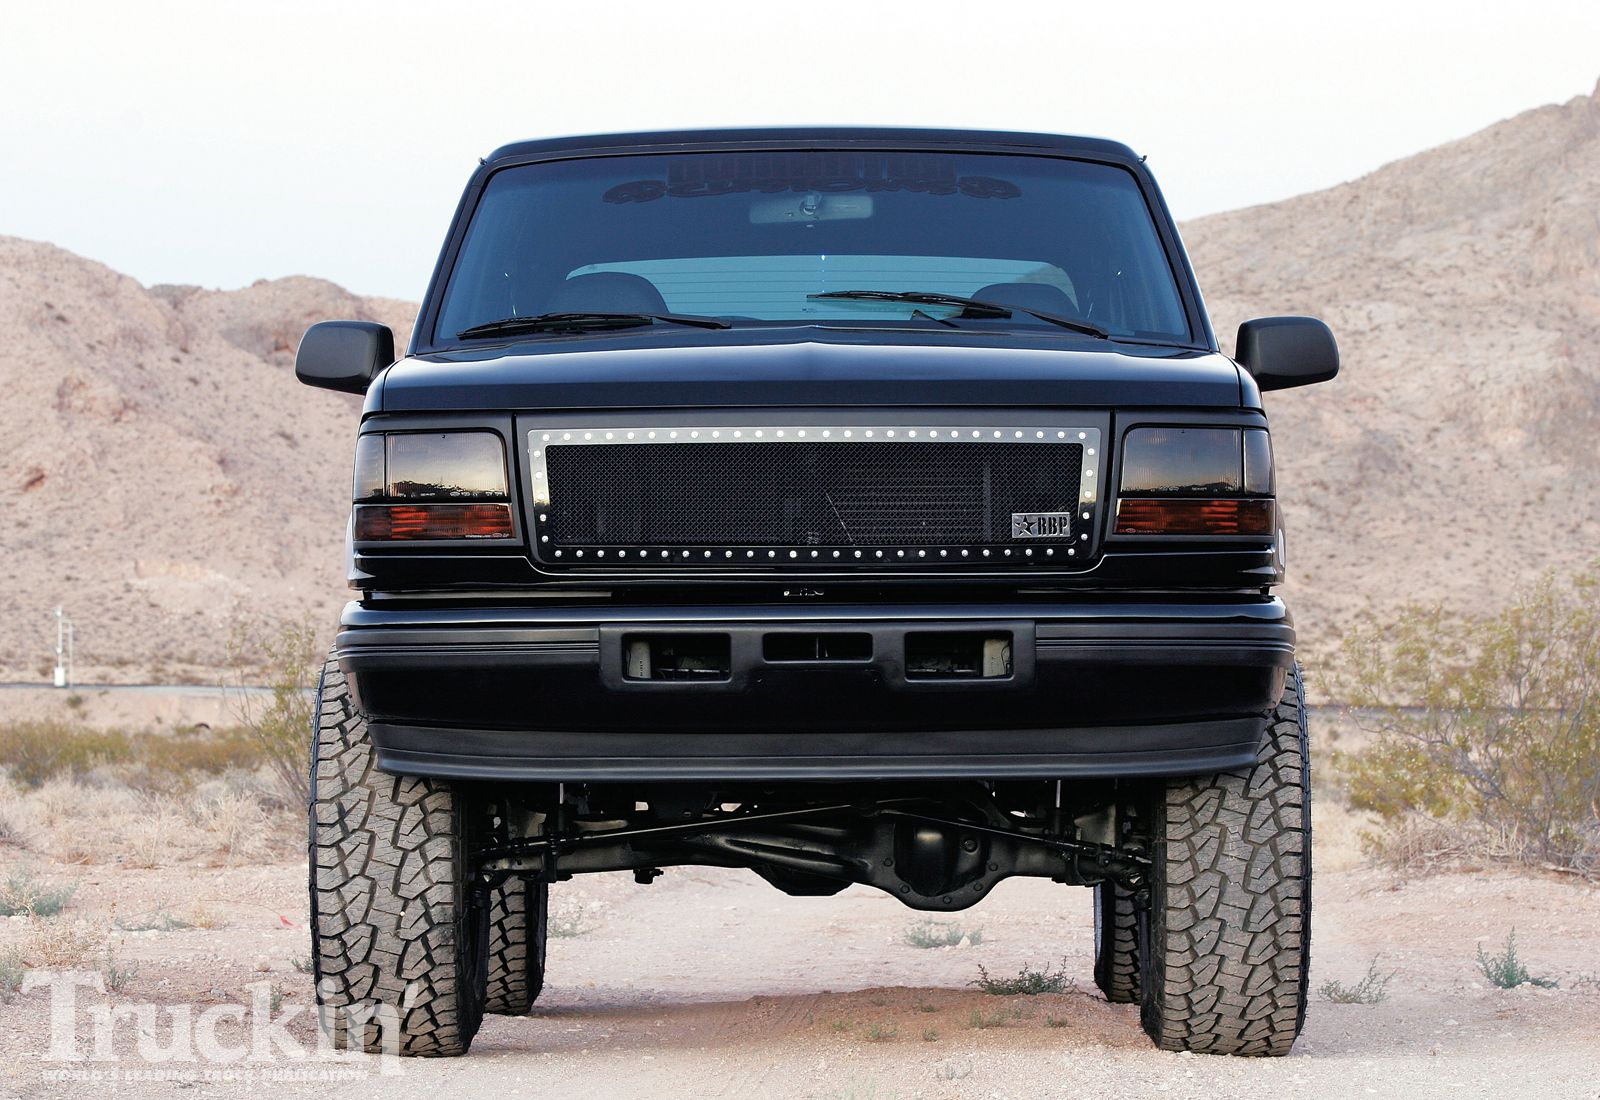 1991 Ford Bronco Consumer Reviews Ford bronco, Lifted